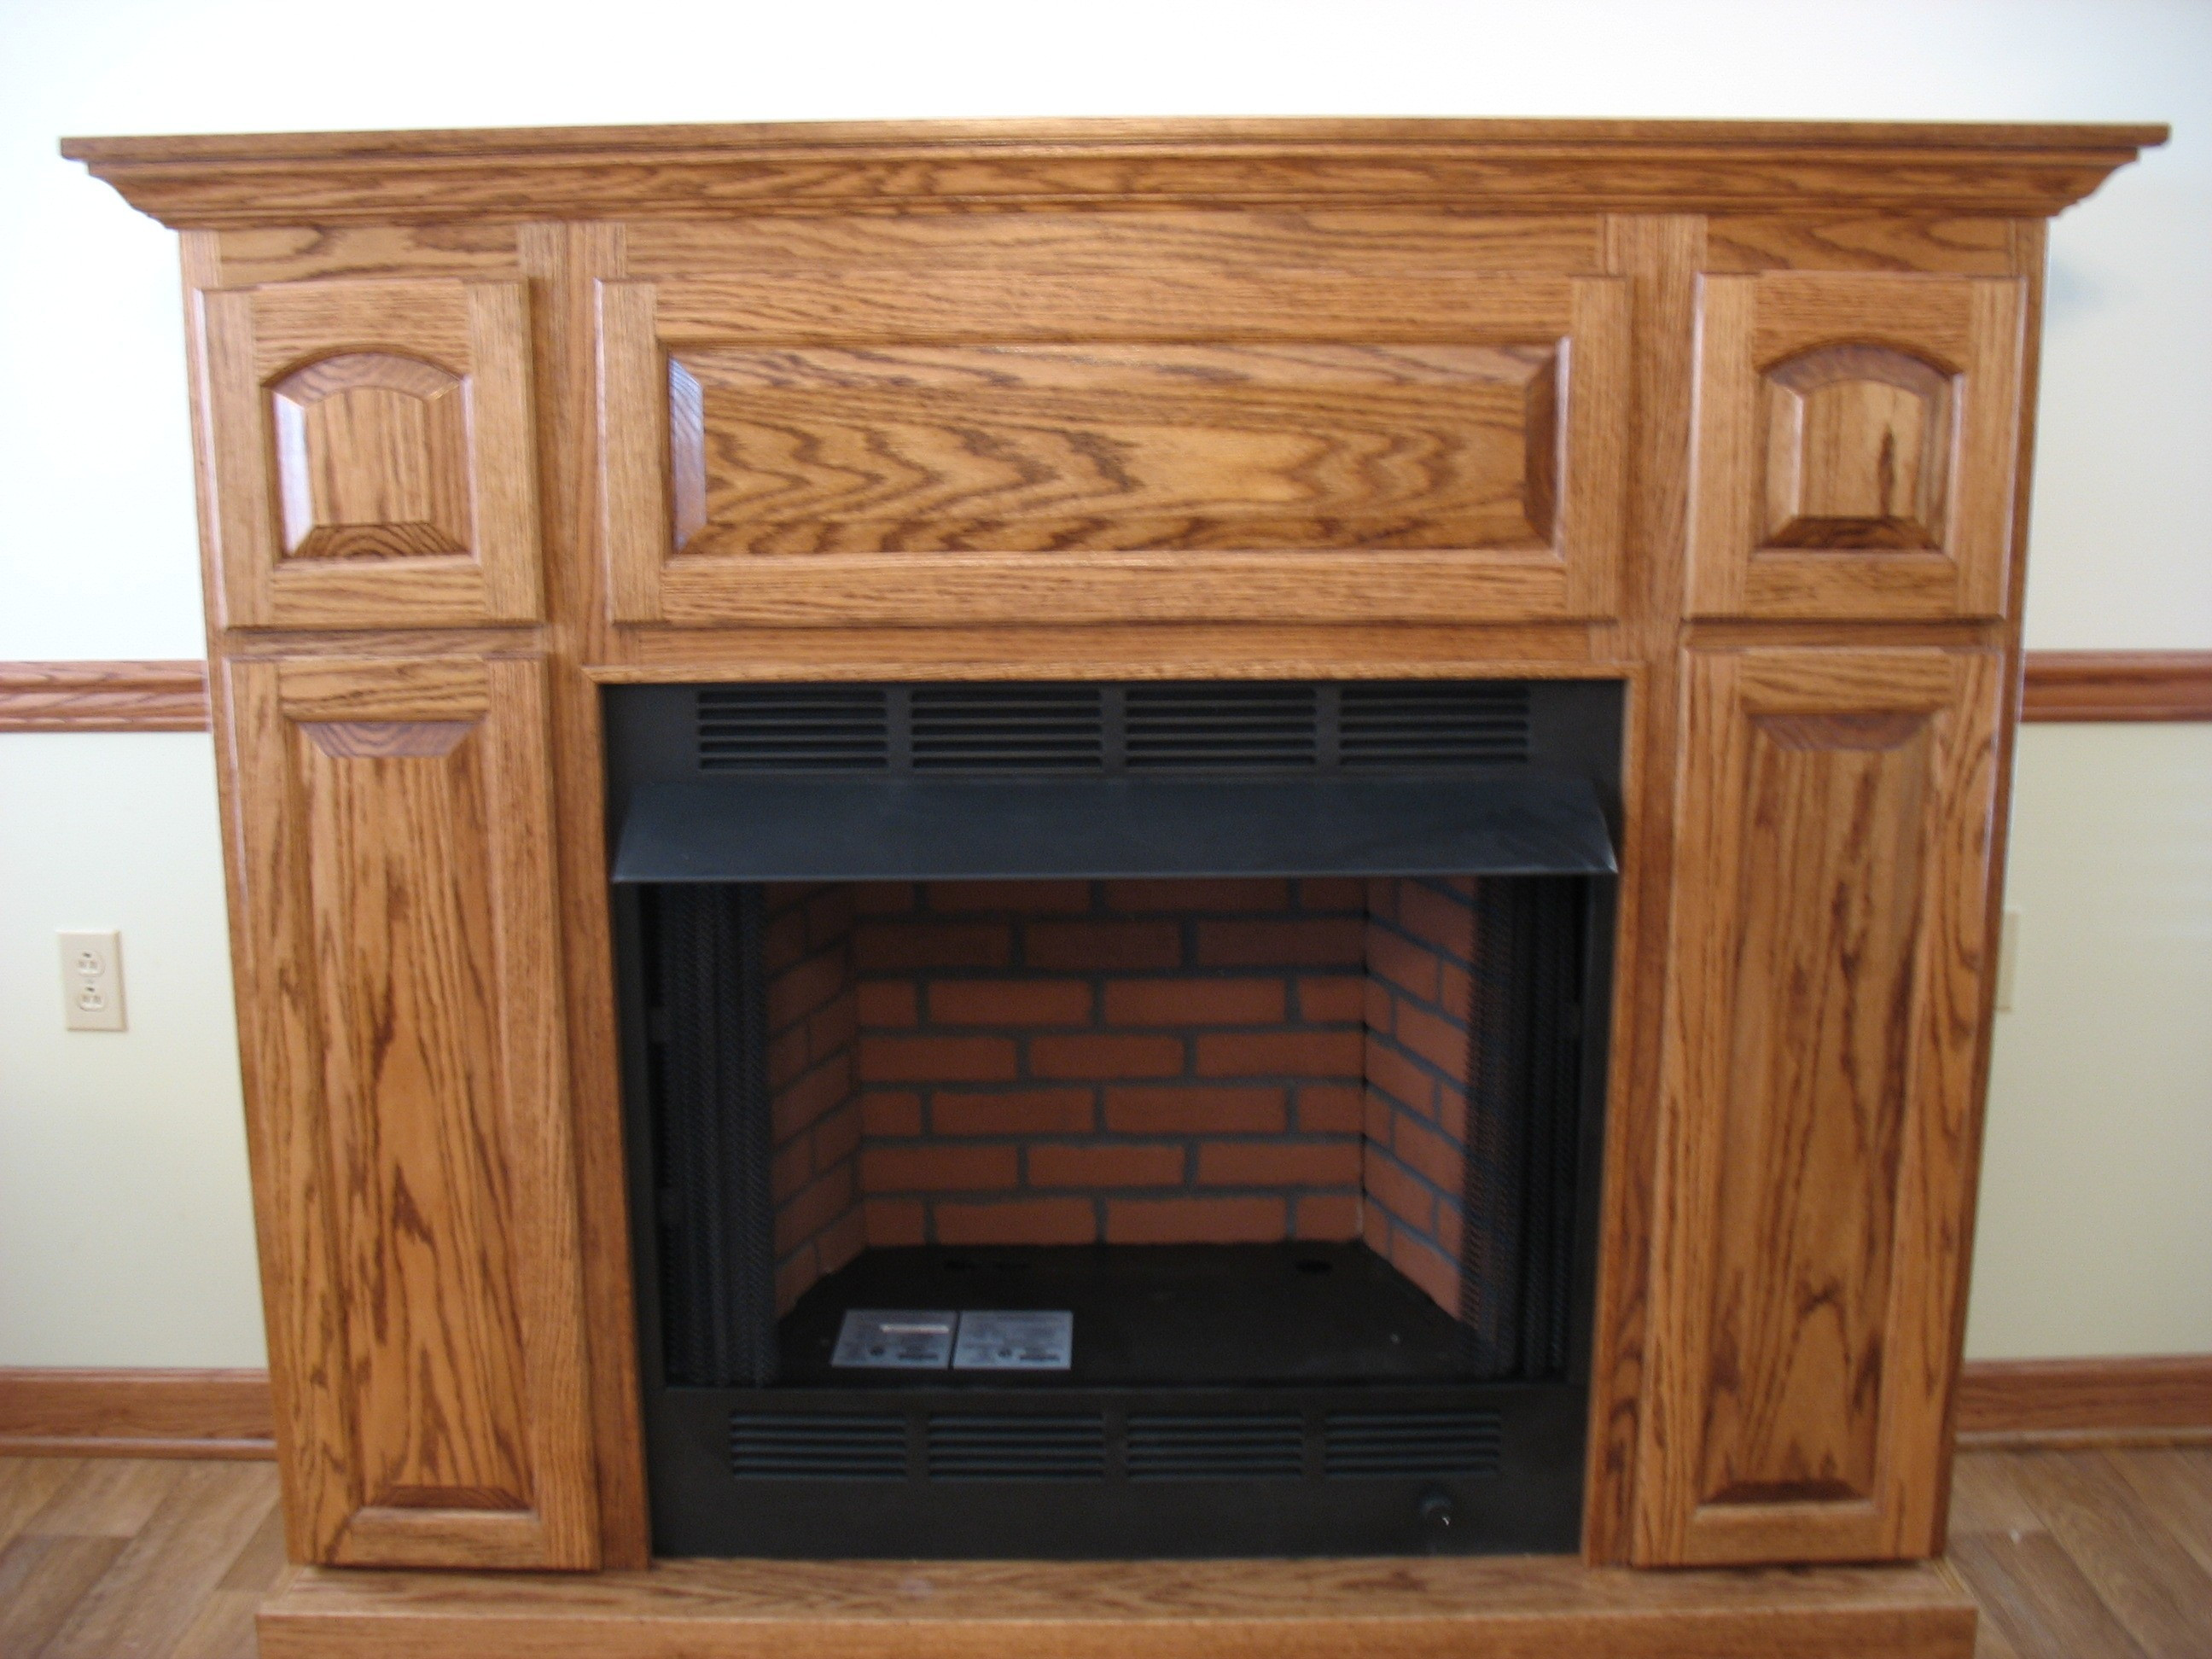 Best ideas about Wood Fireplace Mantels . Save or Pin Gloosed Wooden Fireplace Mantel Mixed Indoor French Doors Now.